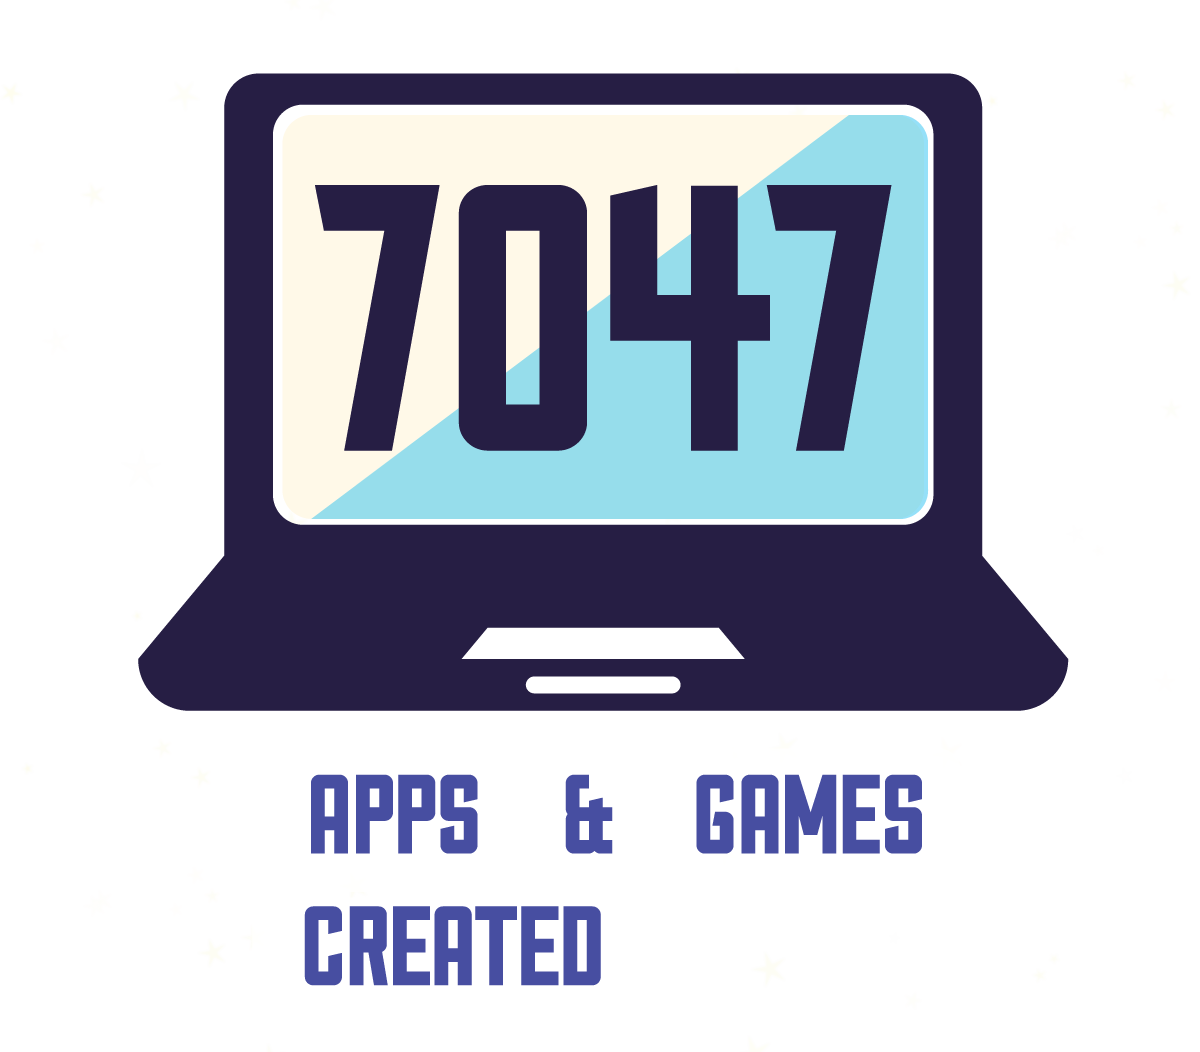 7047 apps and games created